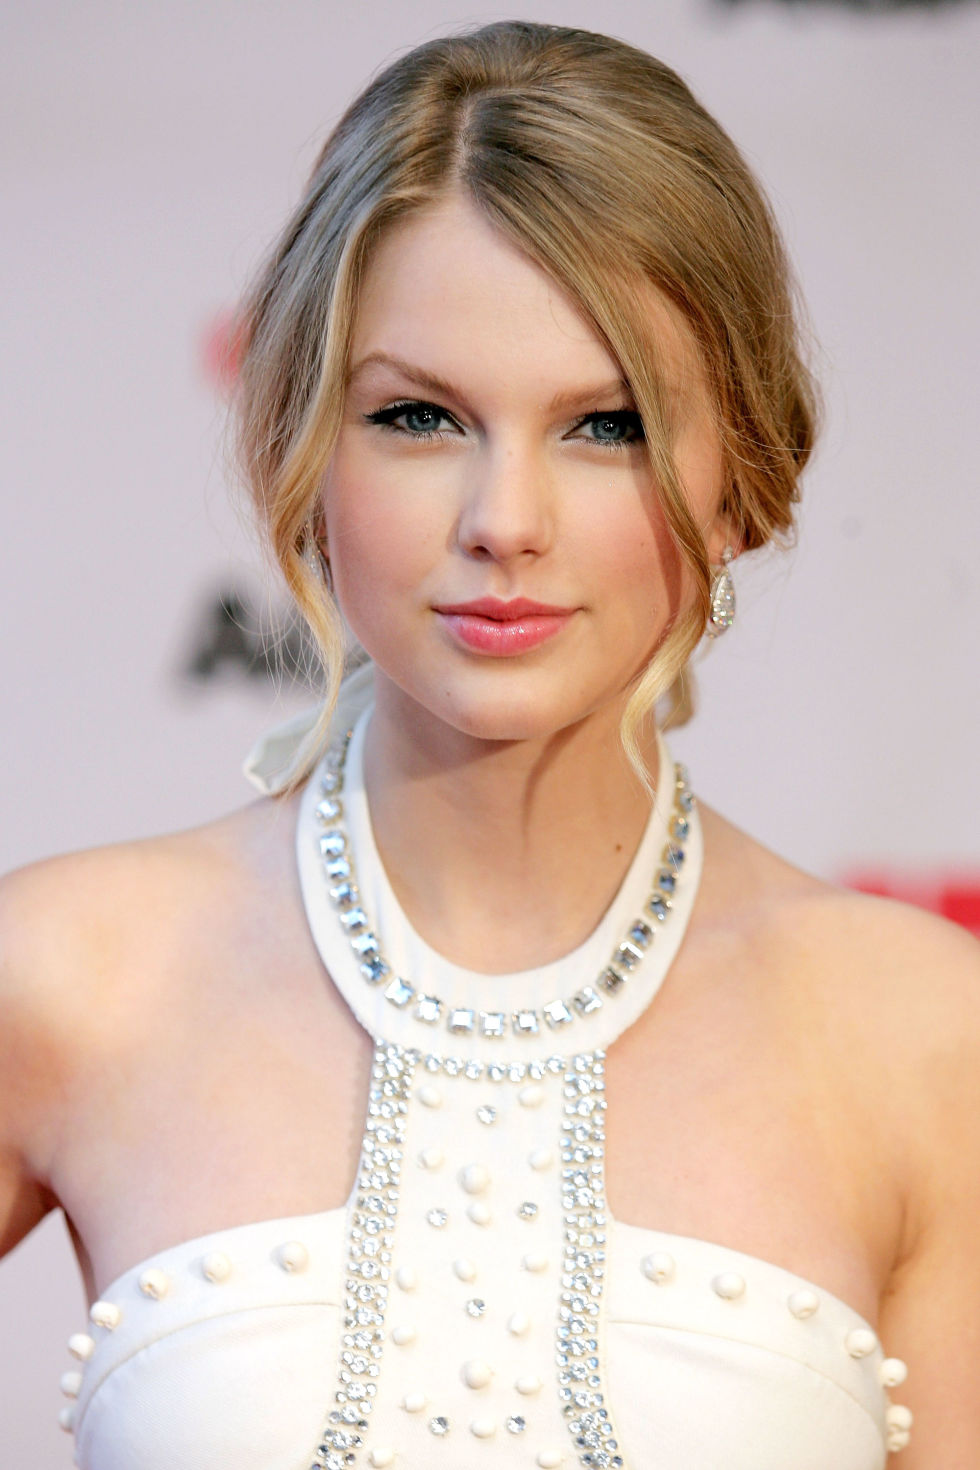 Taylor Swift Beautifull